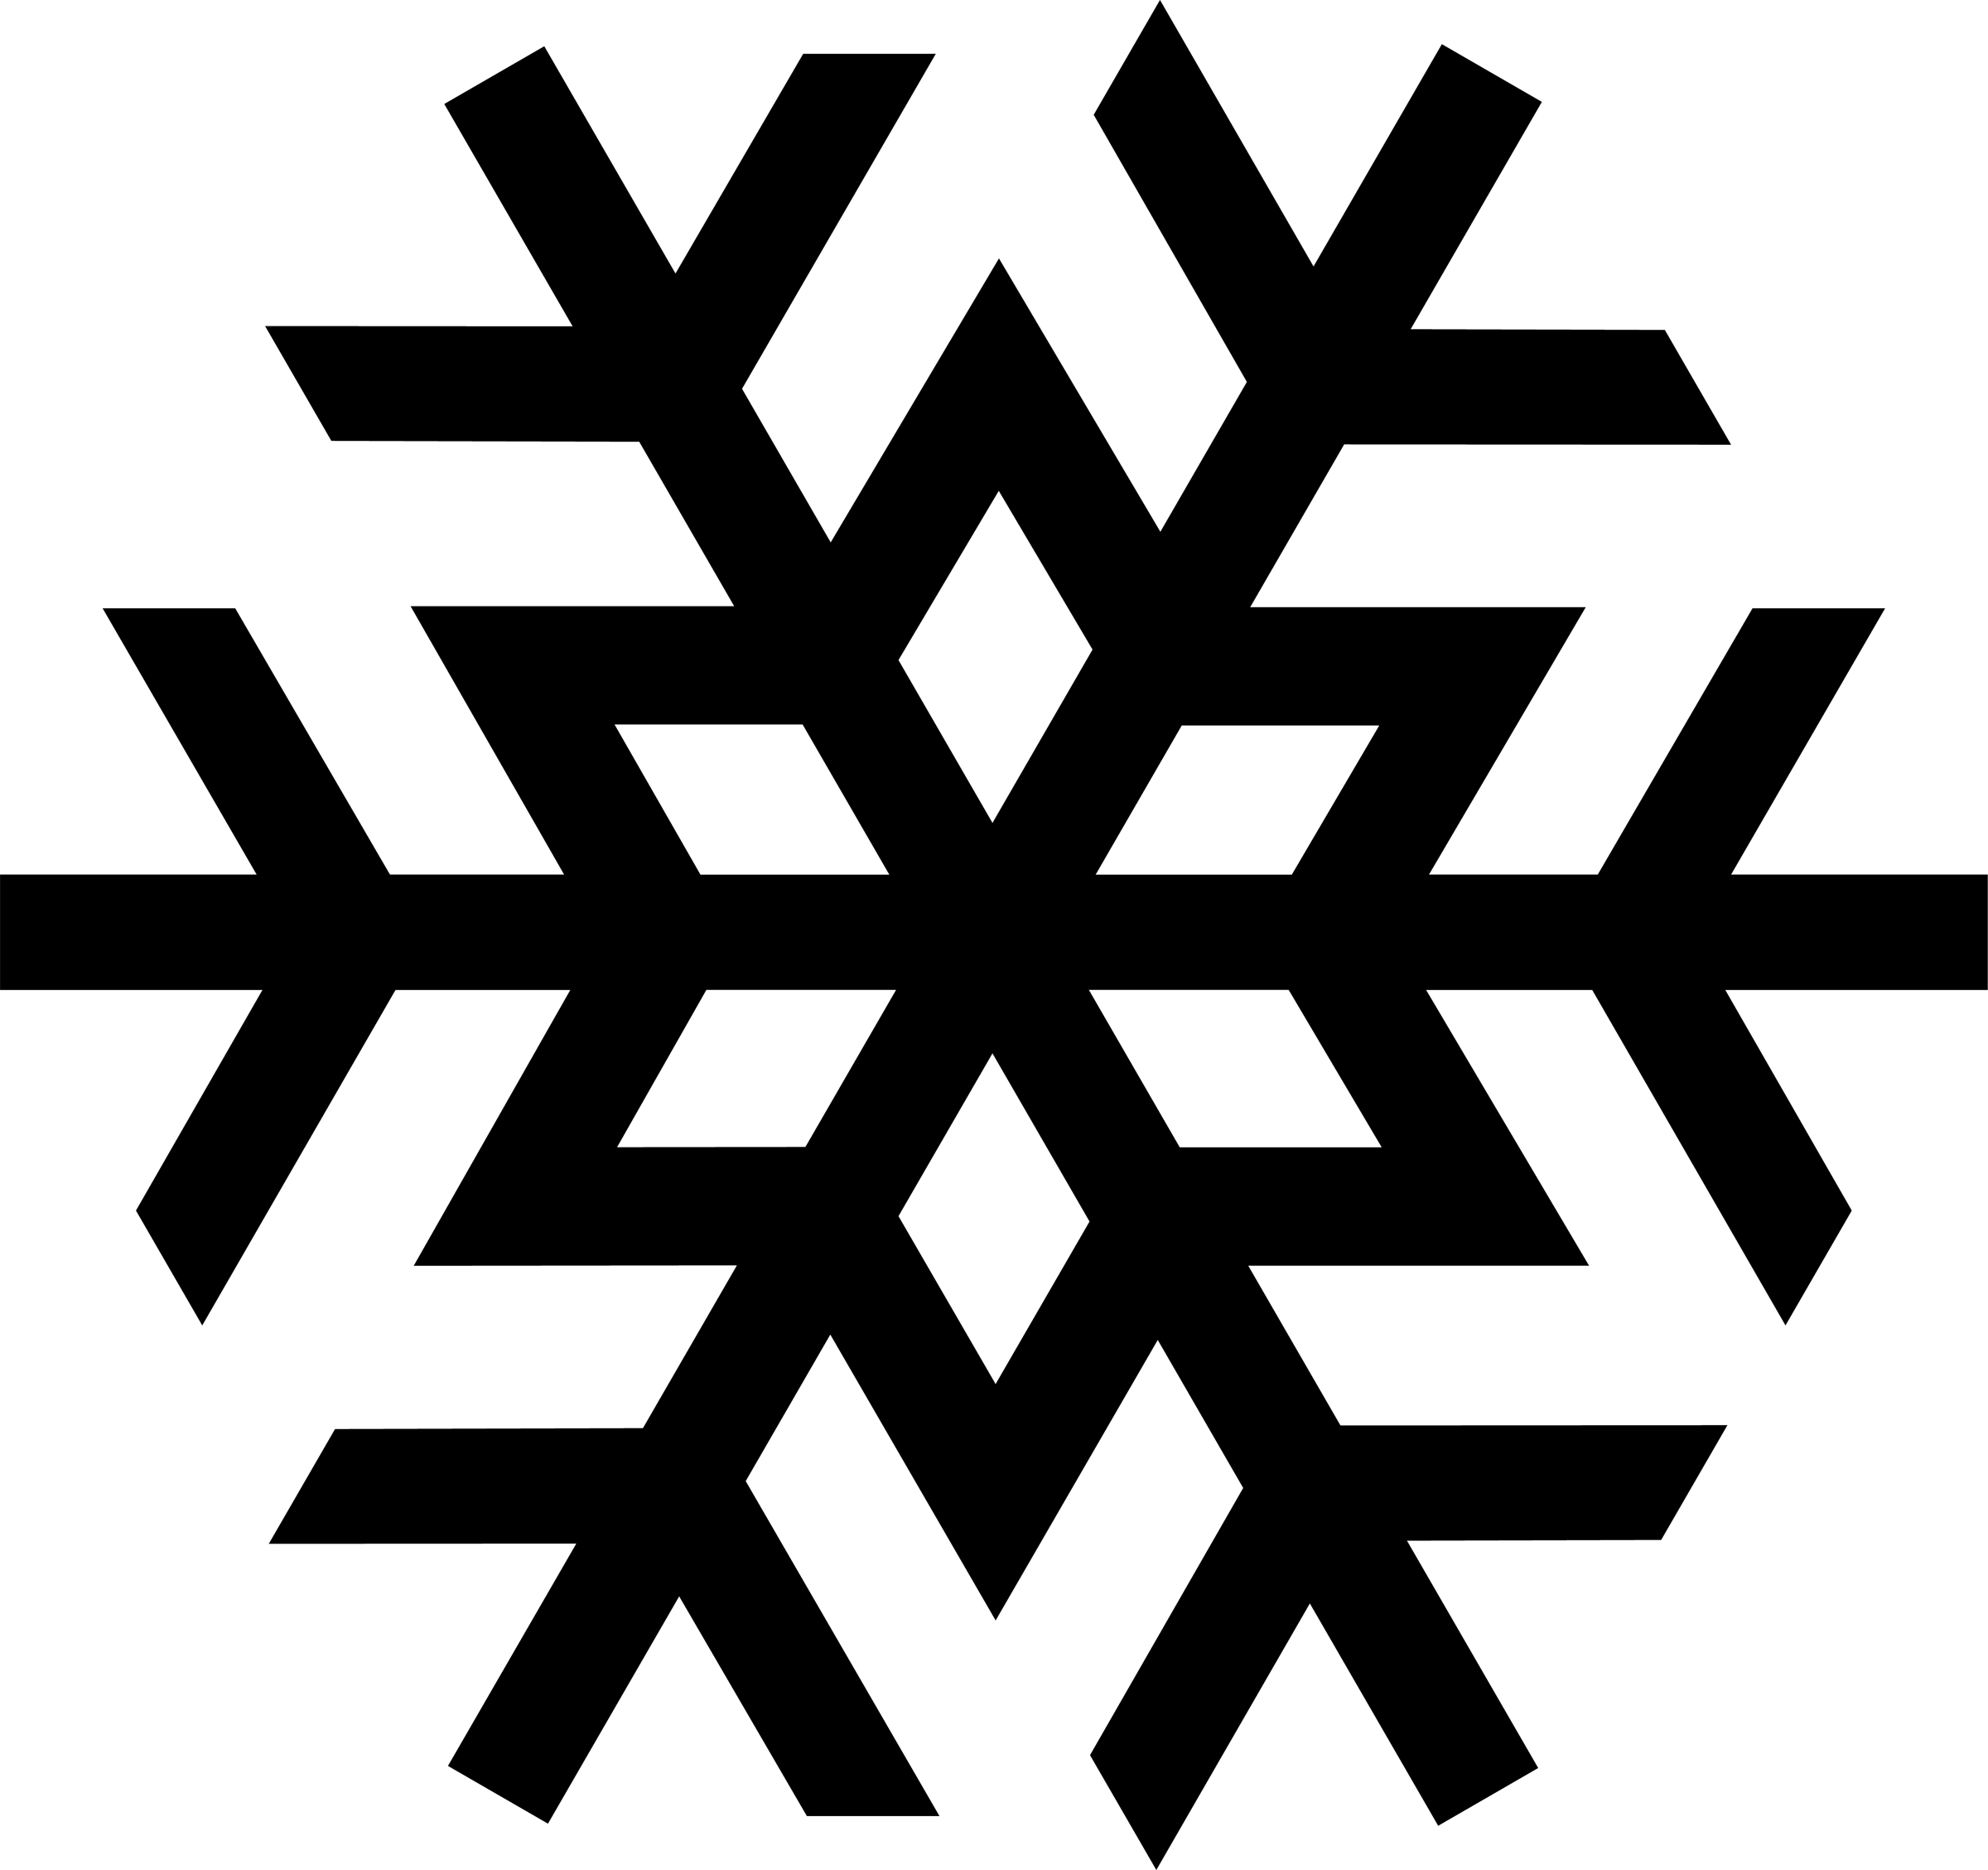 Snowflake clipart #2, Download drawings